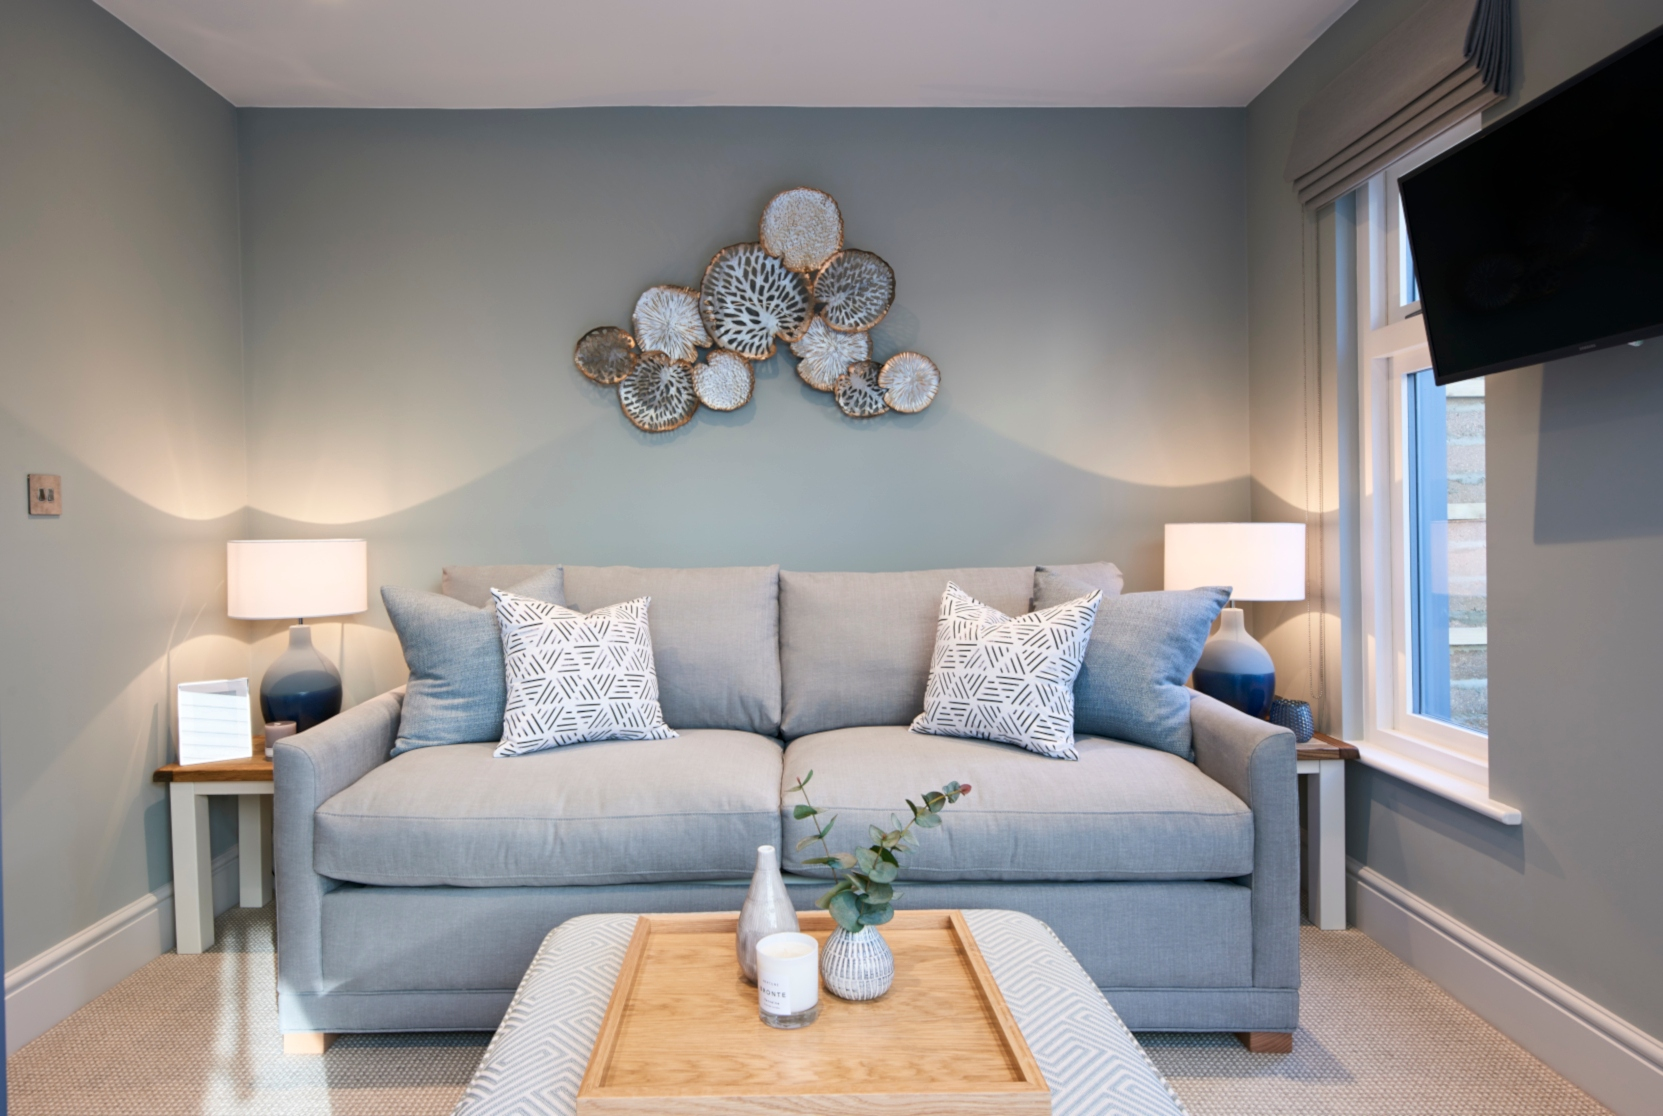 Cosy Snug with grey and blue textures - Interior design